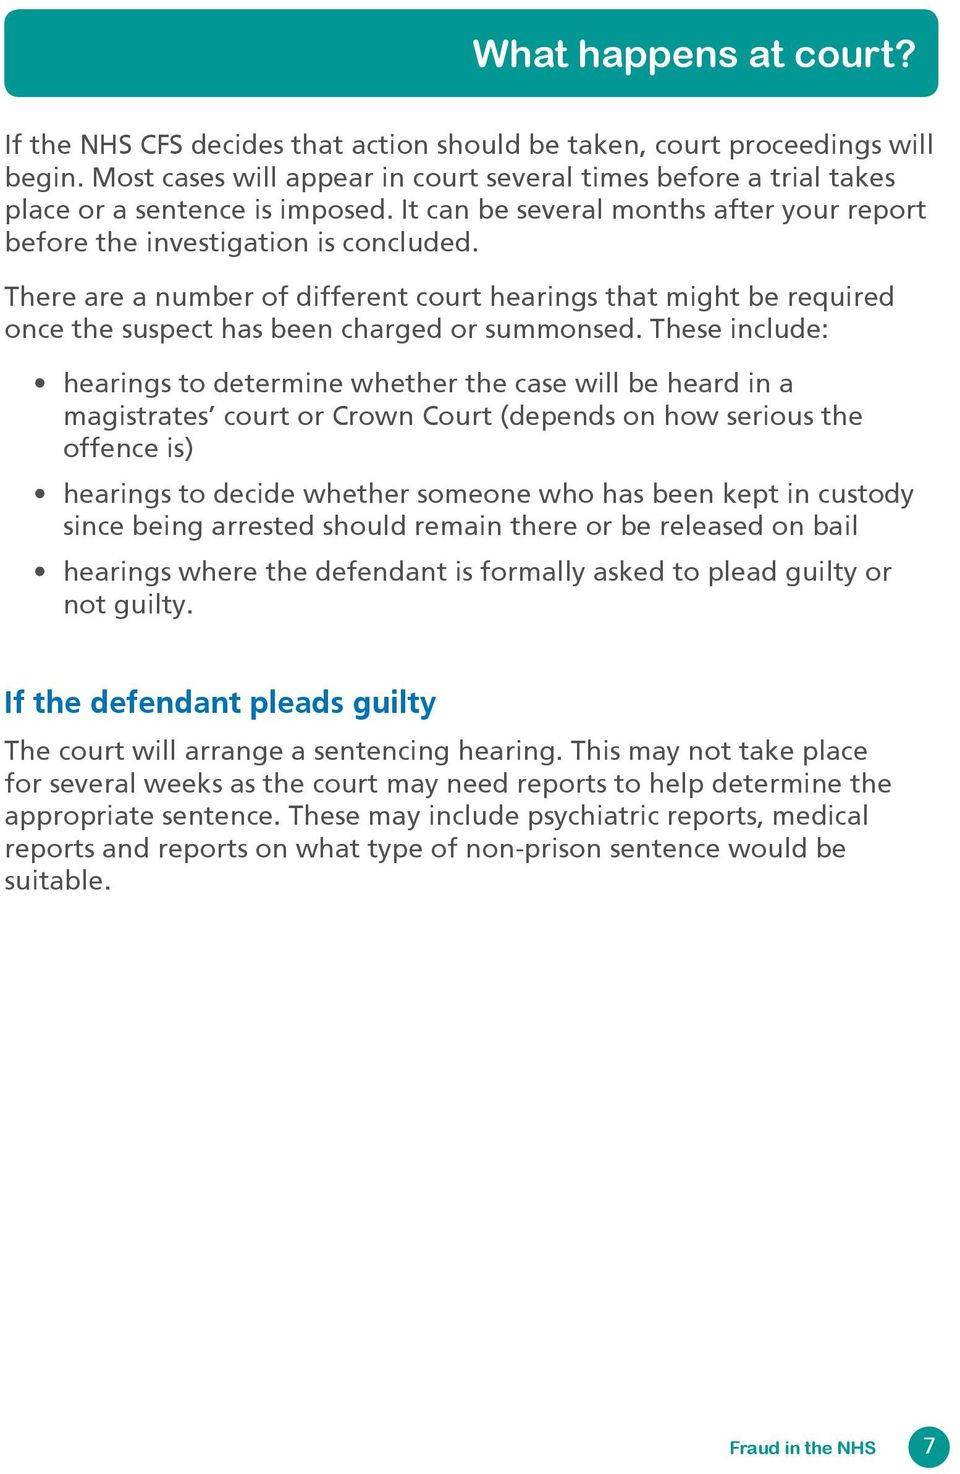 There are a number of different court hearings that might be required once the suspect has been charged or summonsed.